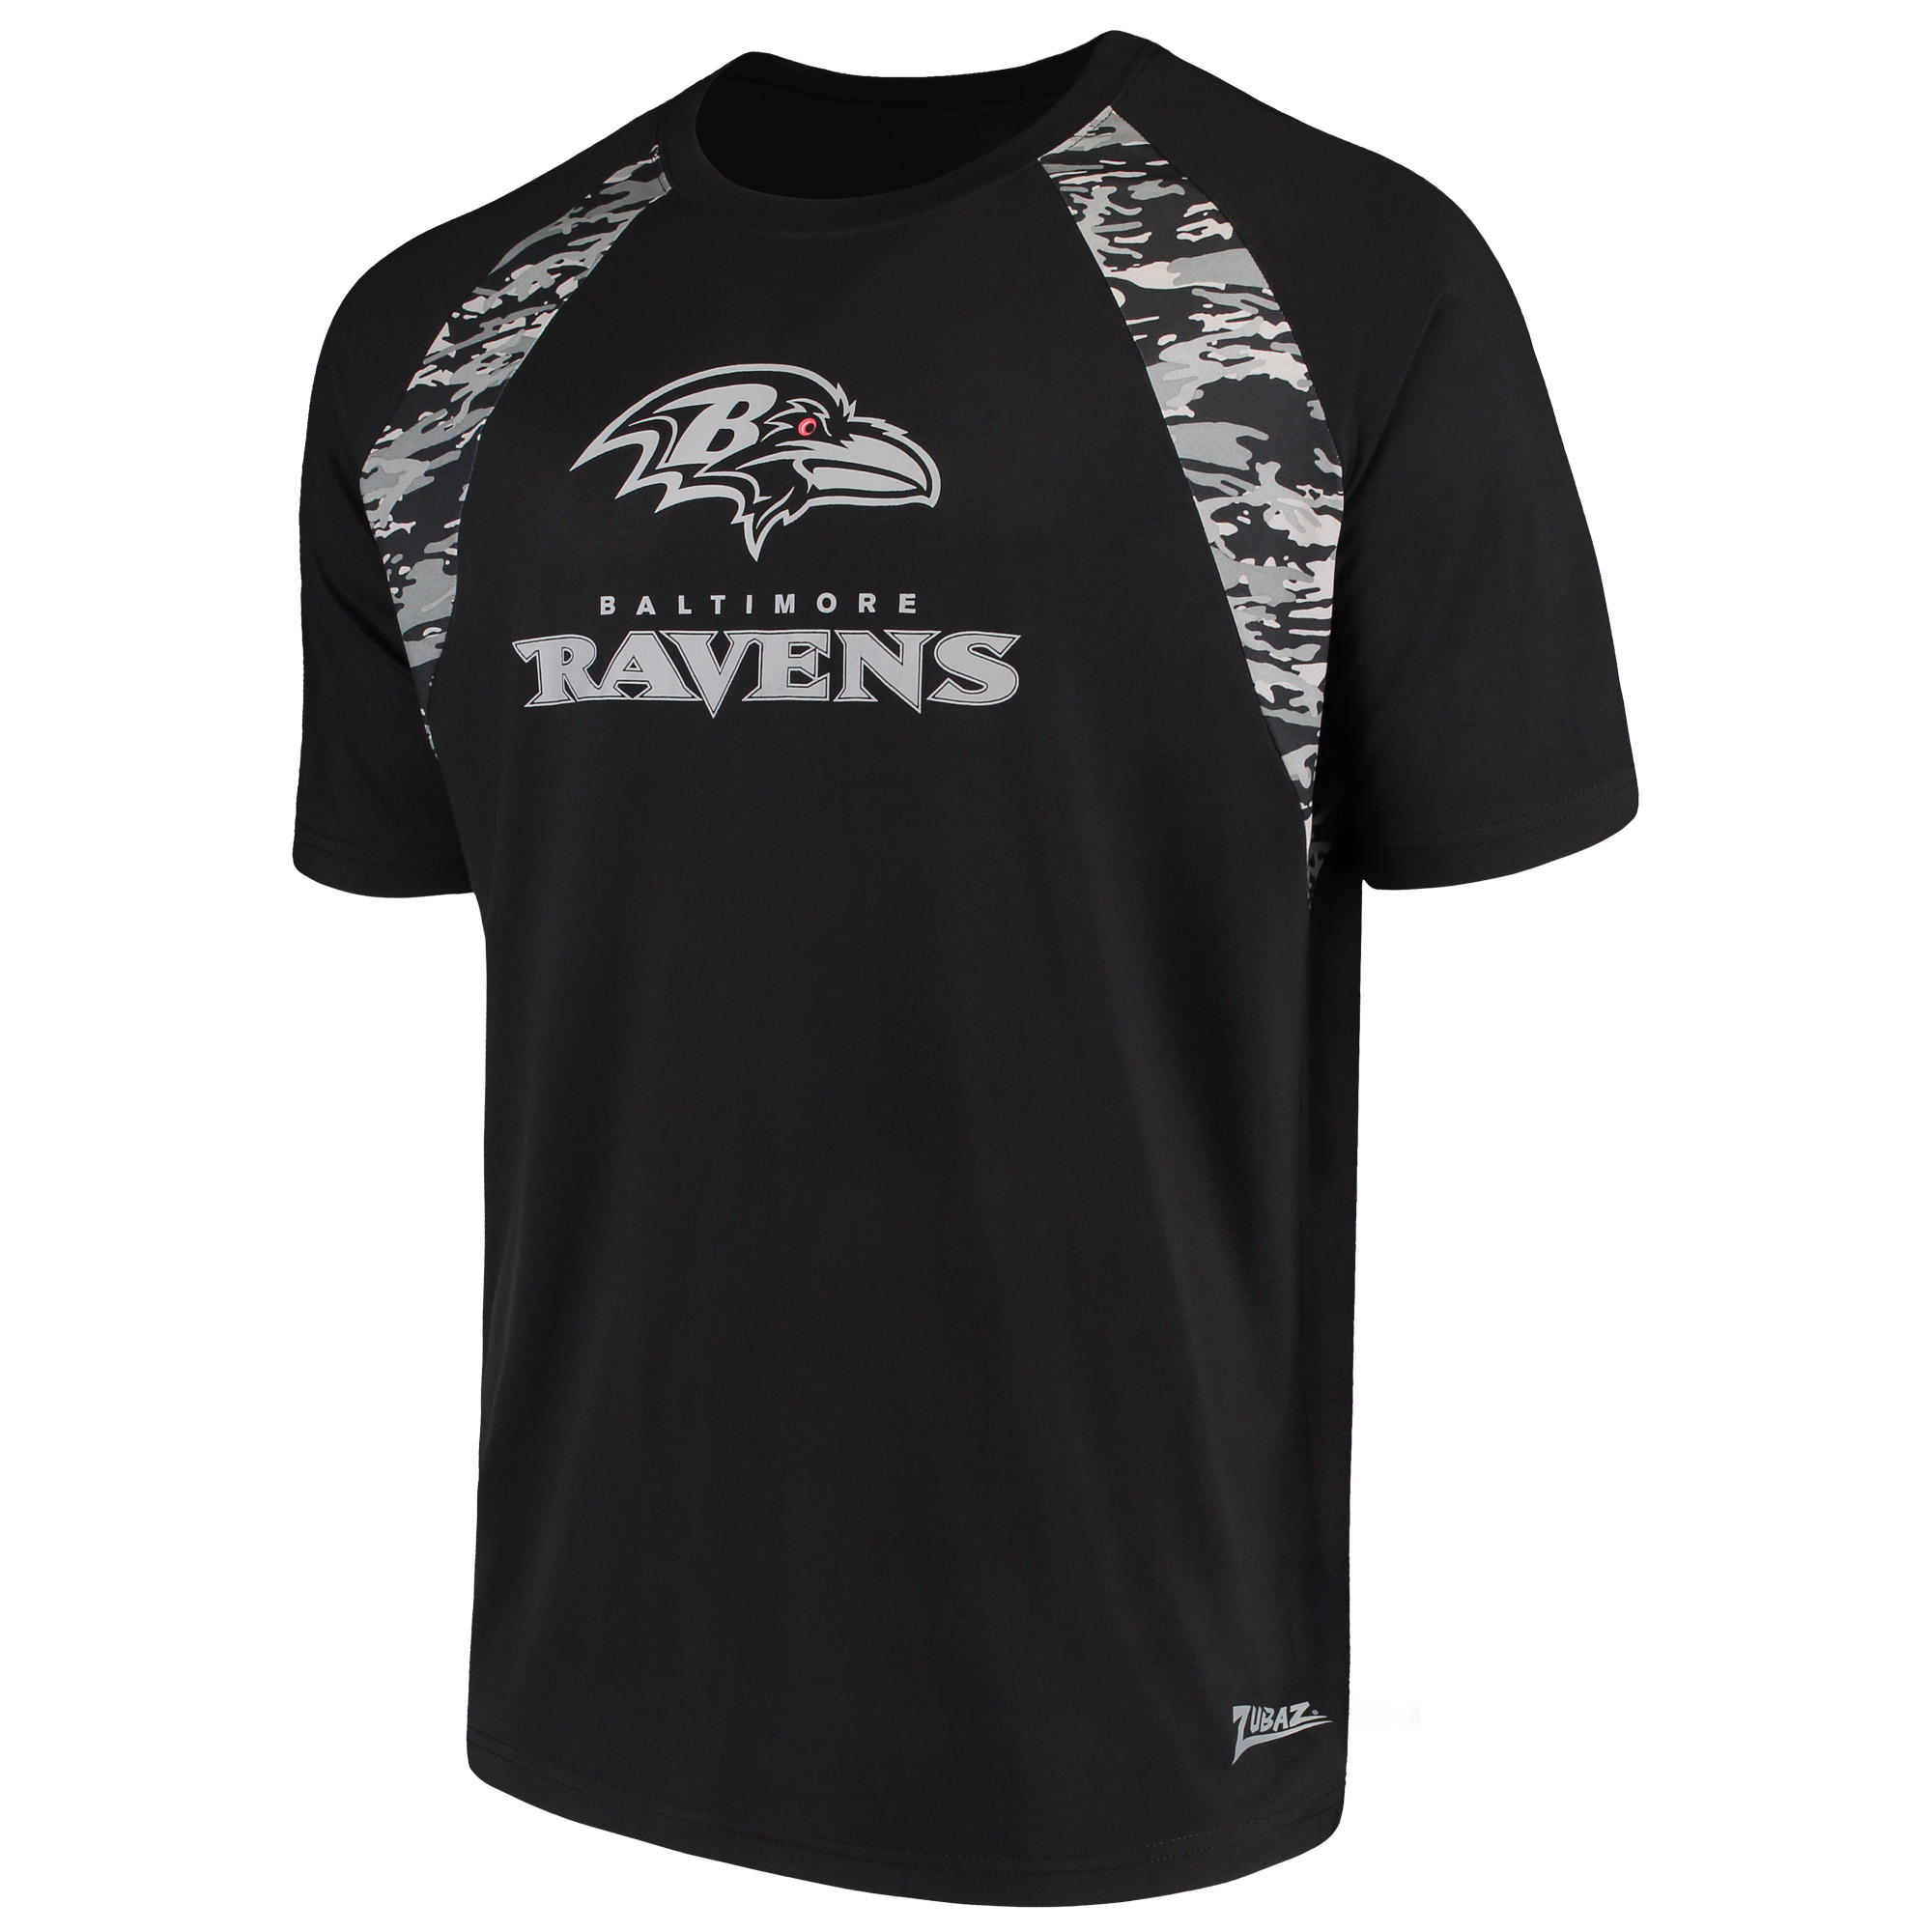 Men's Zubaz Black Baltimore Ravens Camo Raglan T-Shirt